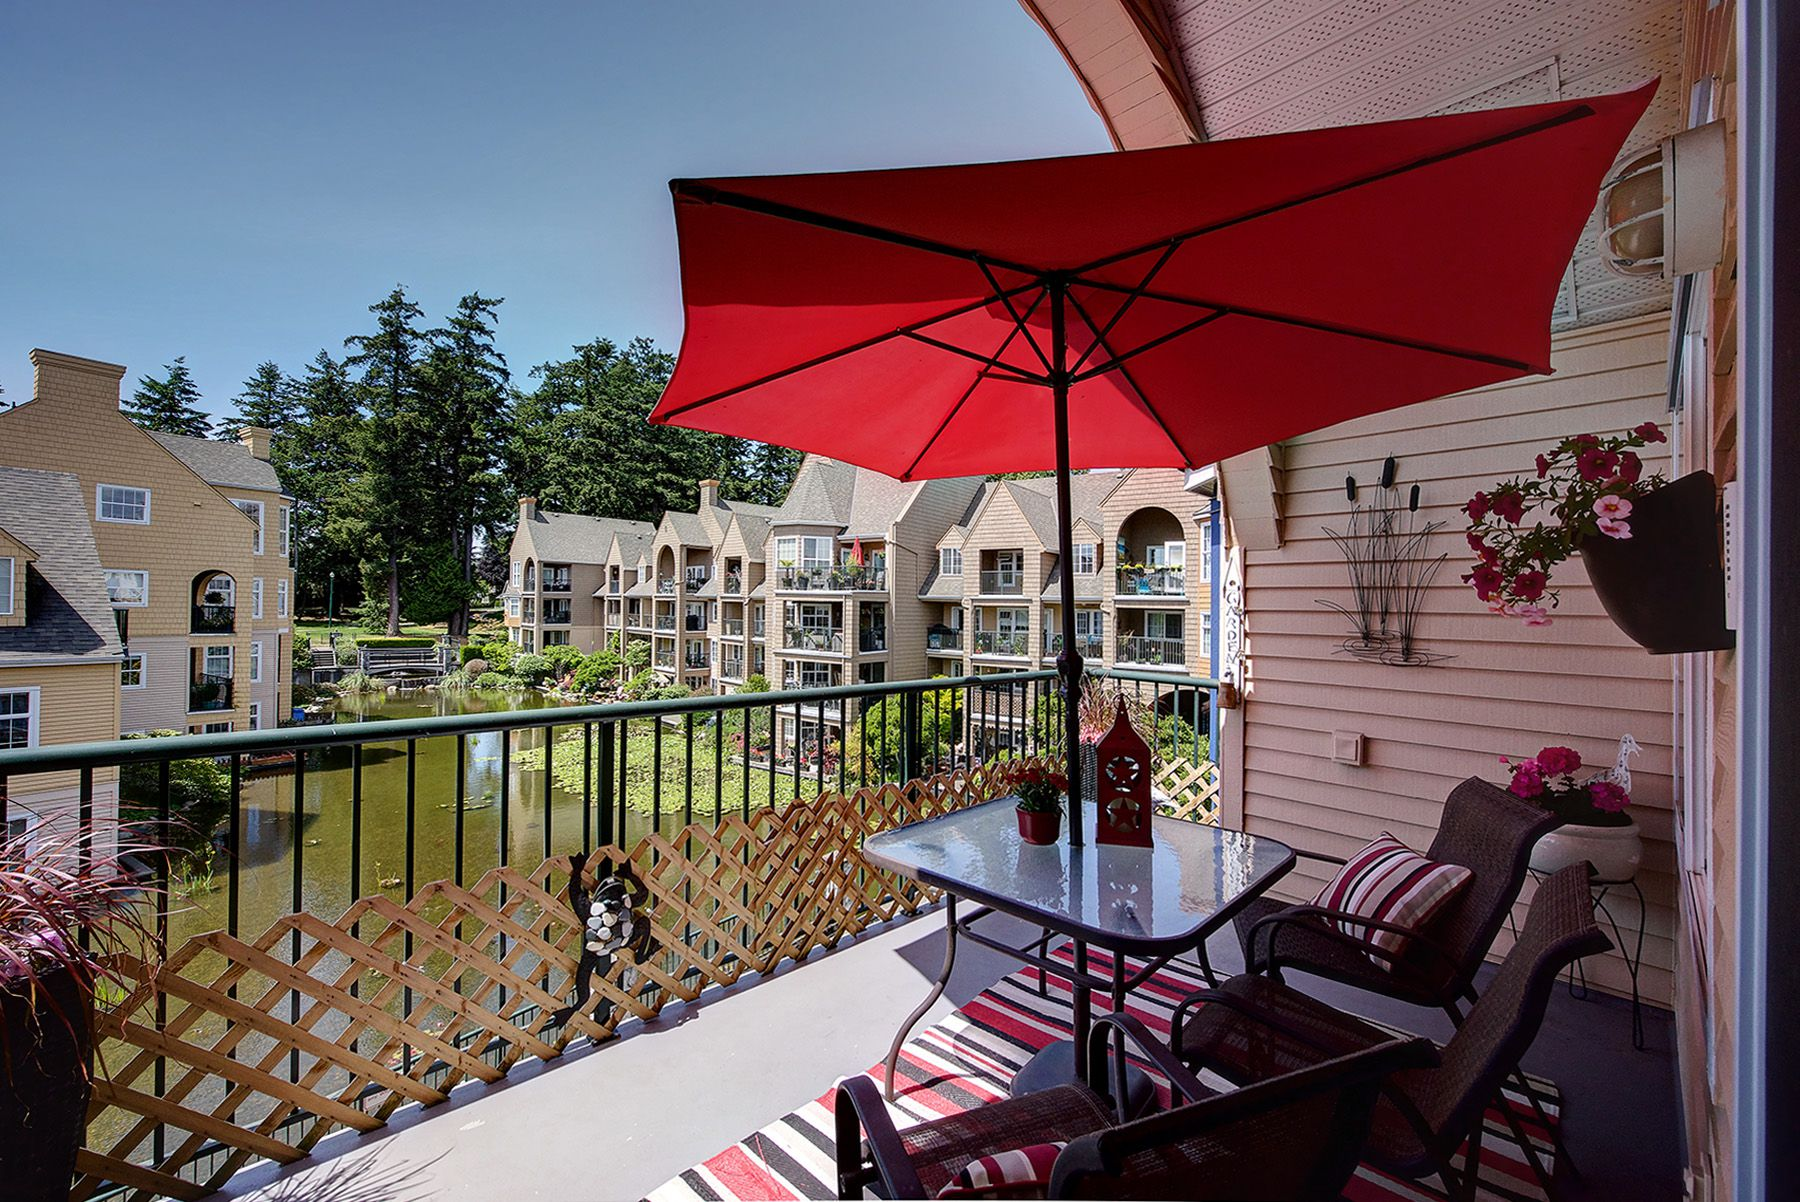 """Main Photo: 409 1363 56 Street in Delta: Cliff Drive Condo for sale in """"WINDSOR WOODS - THE STANWAY"""" (Tsawwassen)  : MLS®# R2276663"""